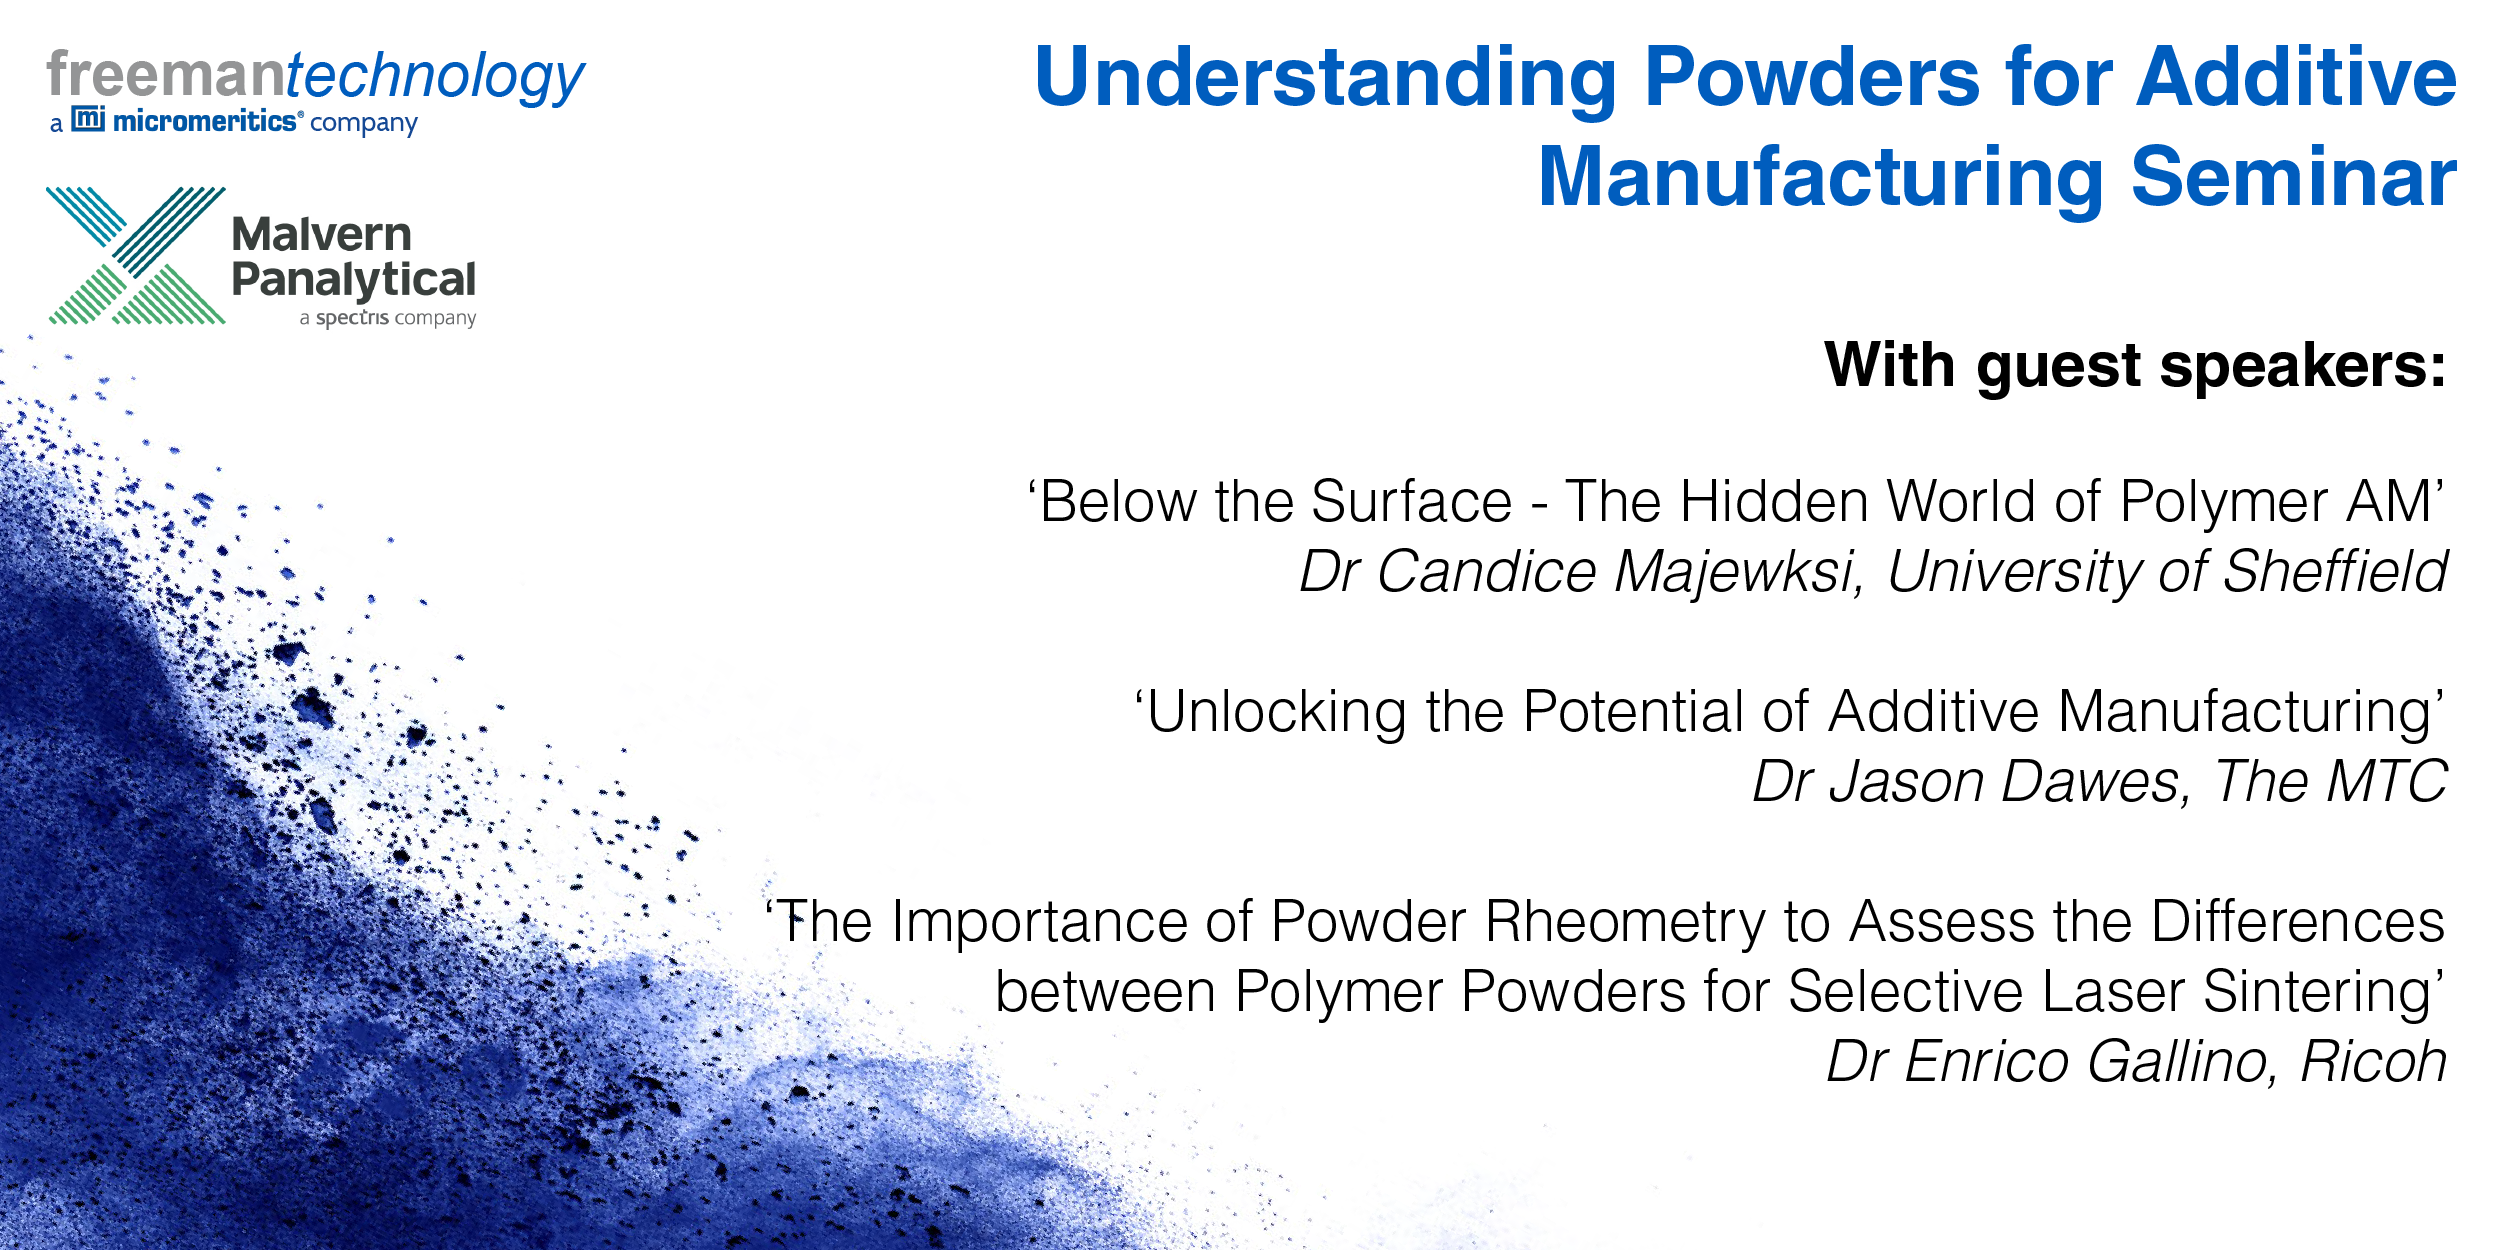 Understanding powders for additive manufacturing seminar (24 September 2019)